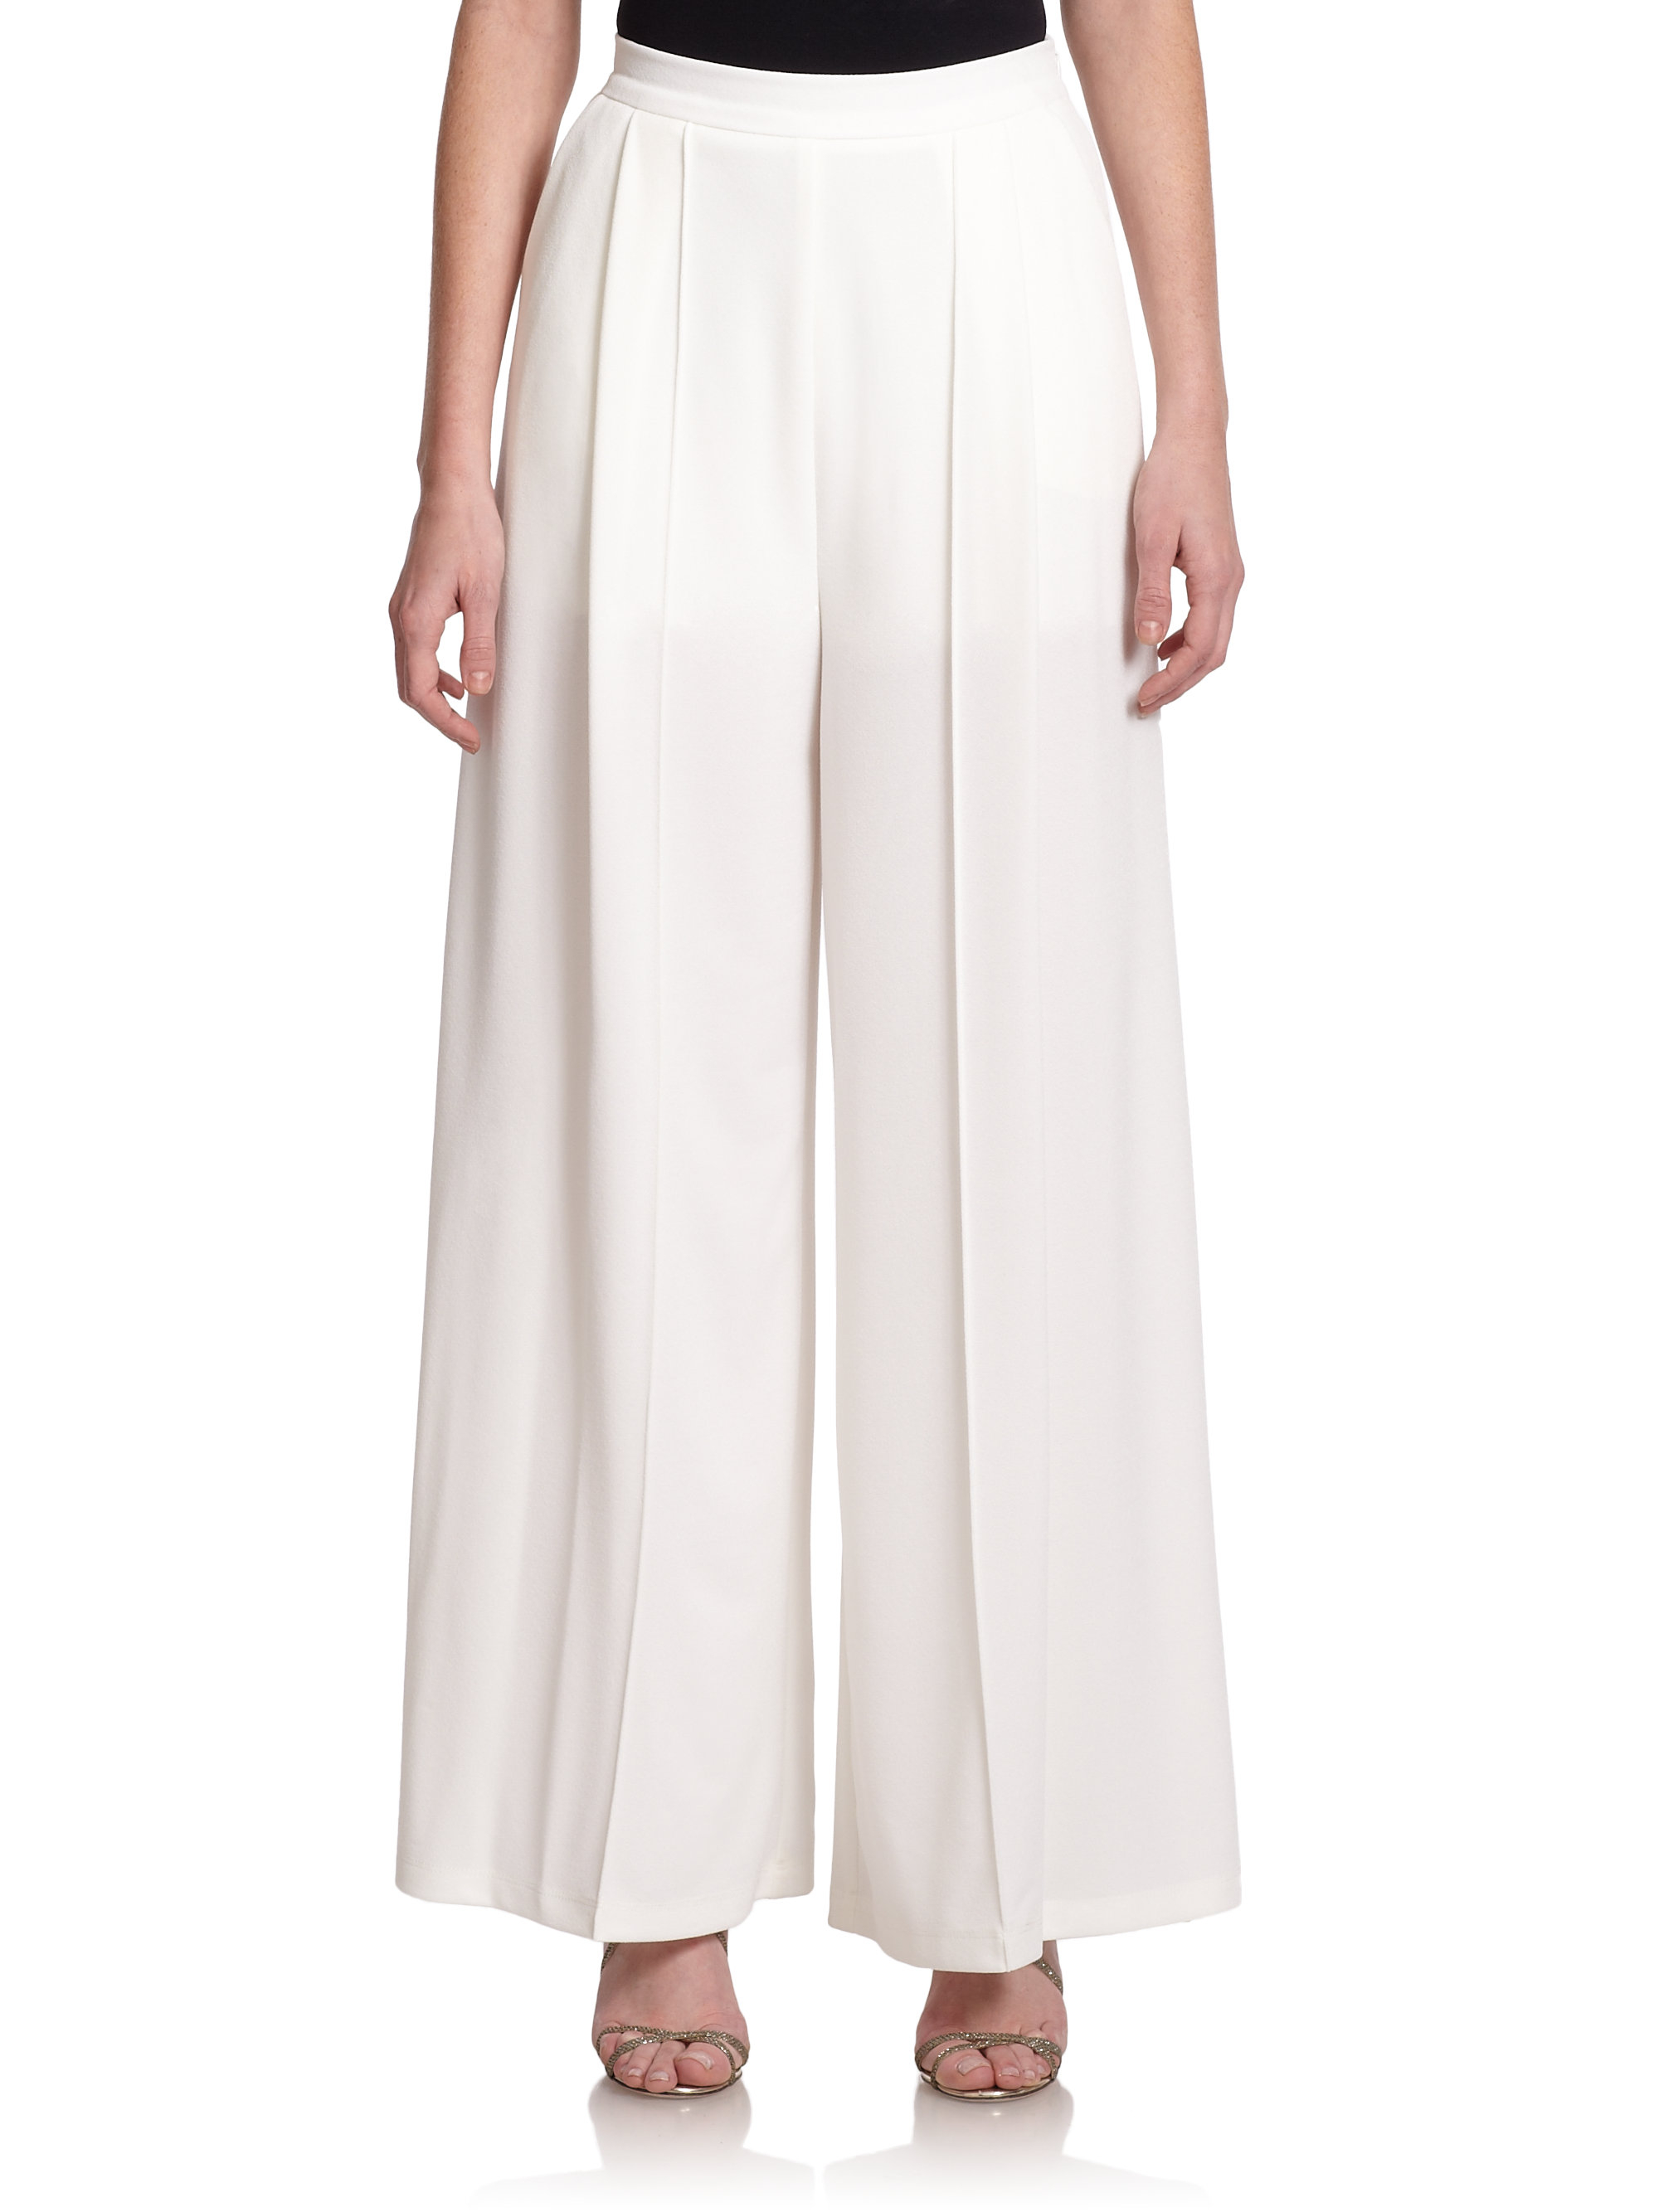 white palazzo pants pant so